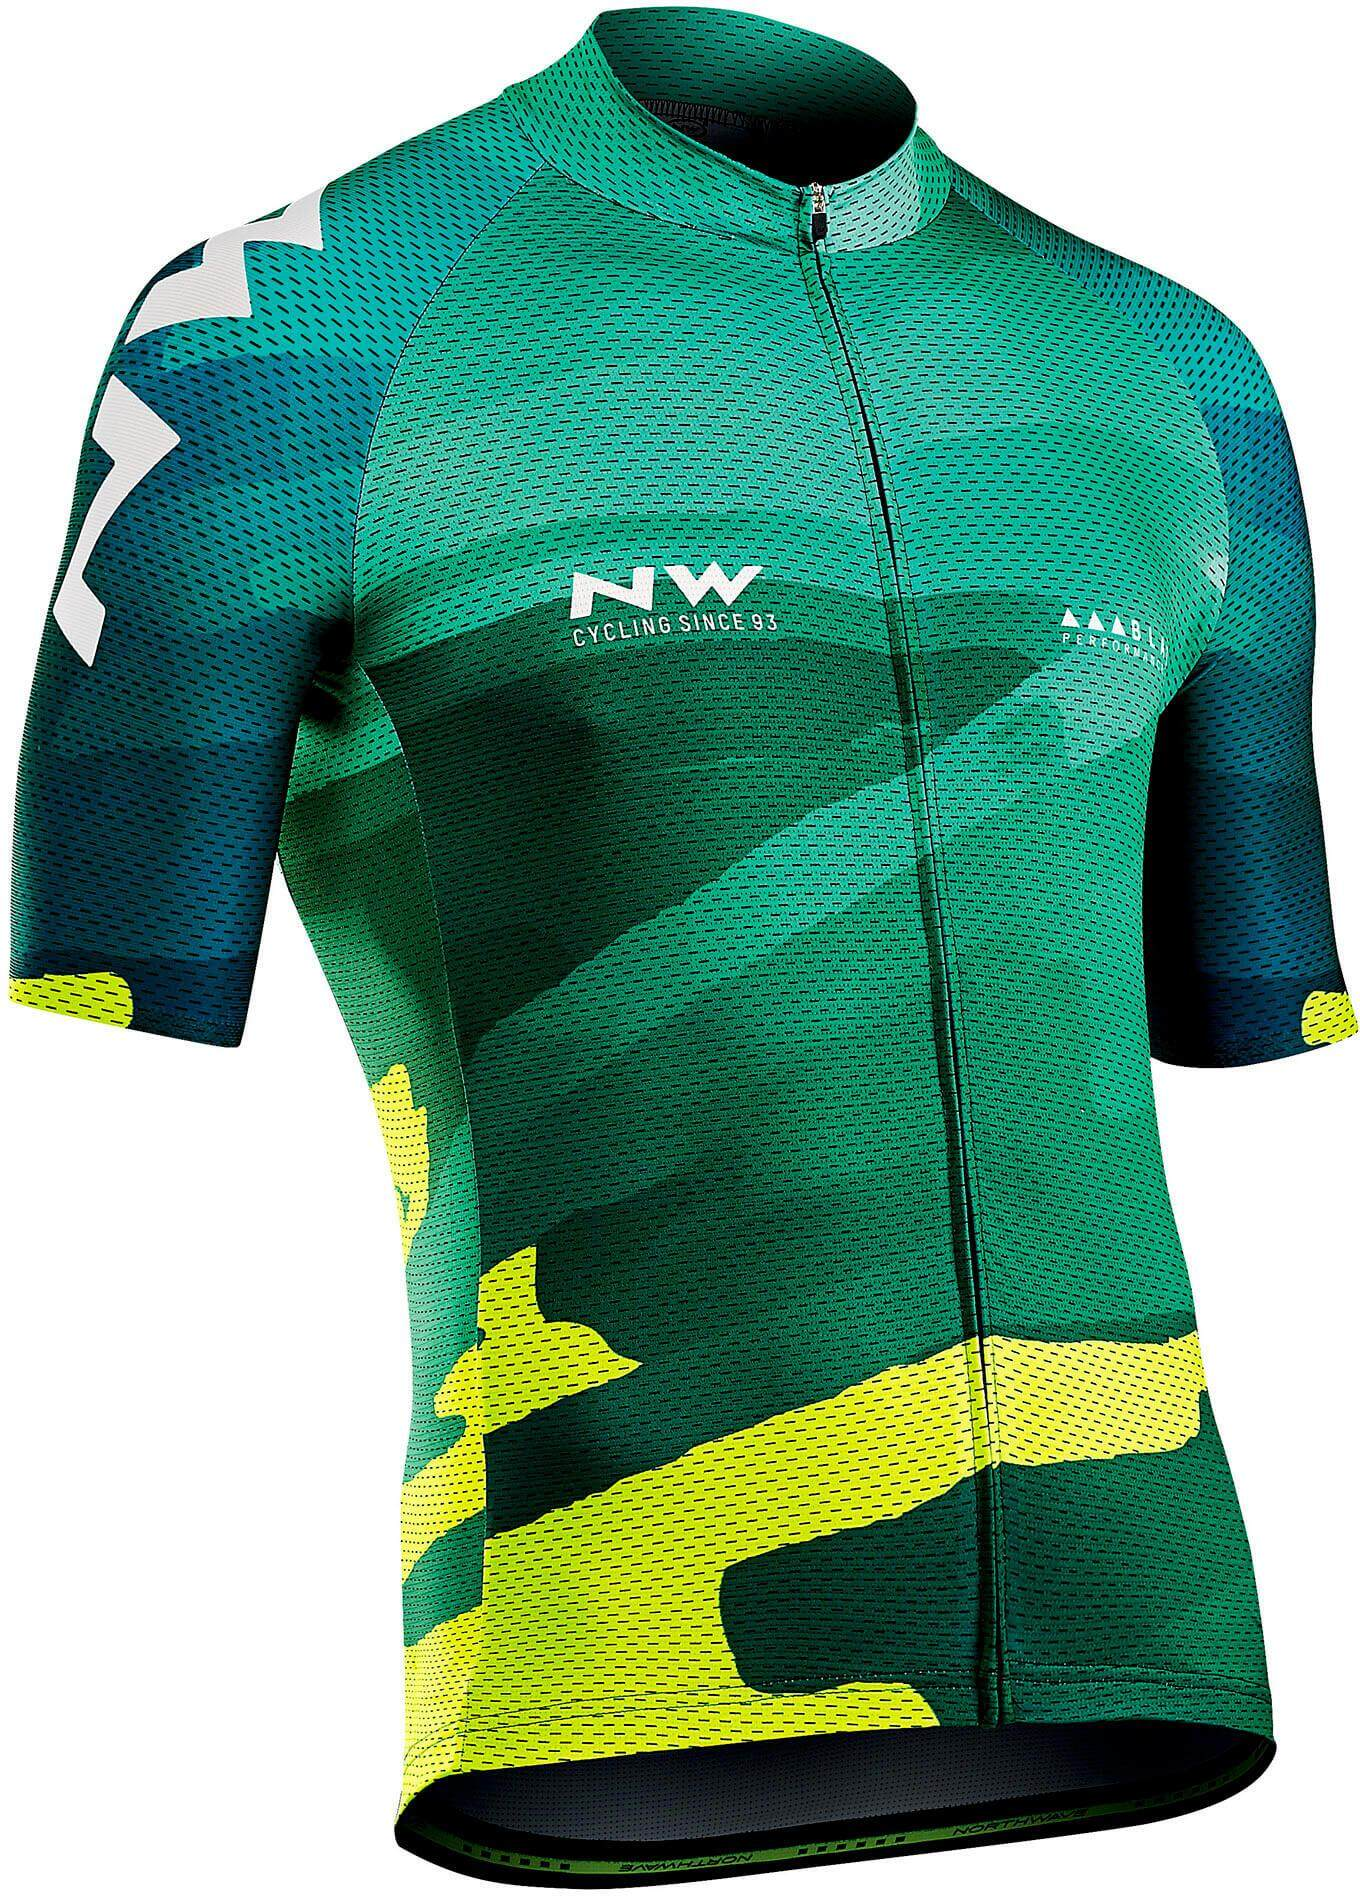 NW Northway 2019 Style Short Sleeve Cycling Jersey Pants Clothes Cycling  Set Racing Biking Sports Bicycle 26724cf16